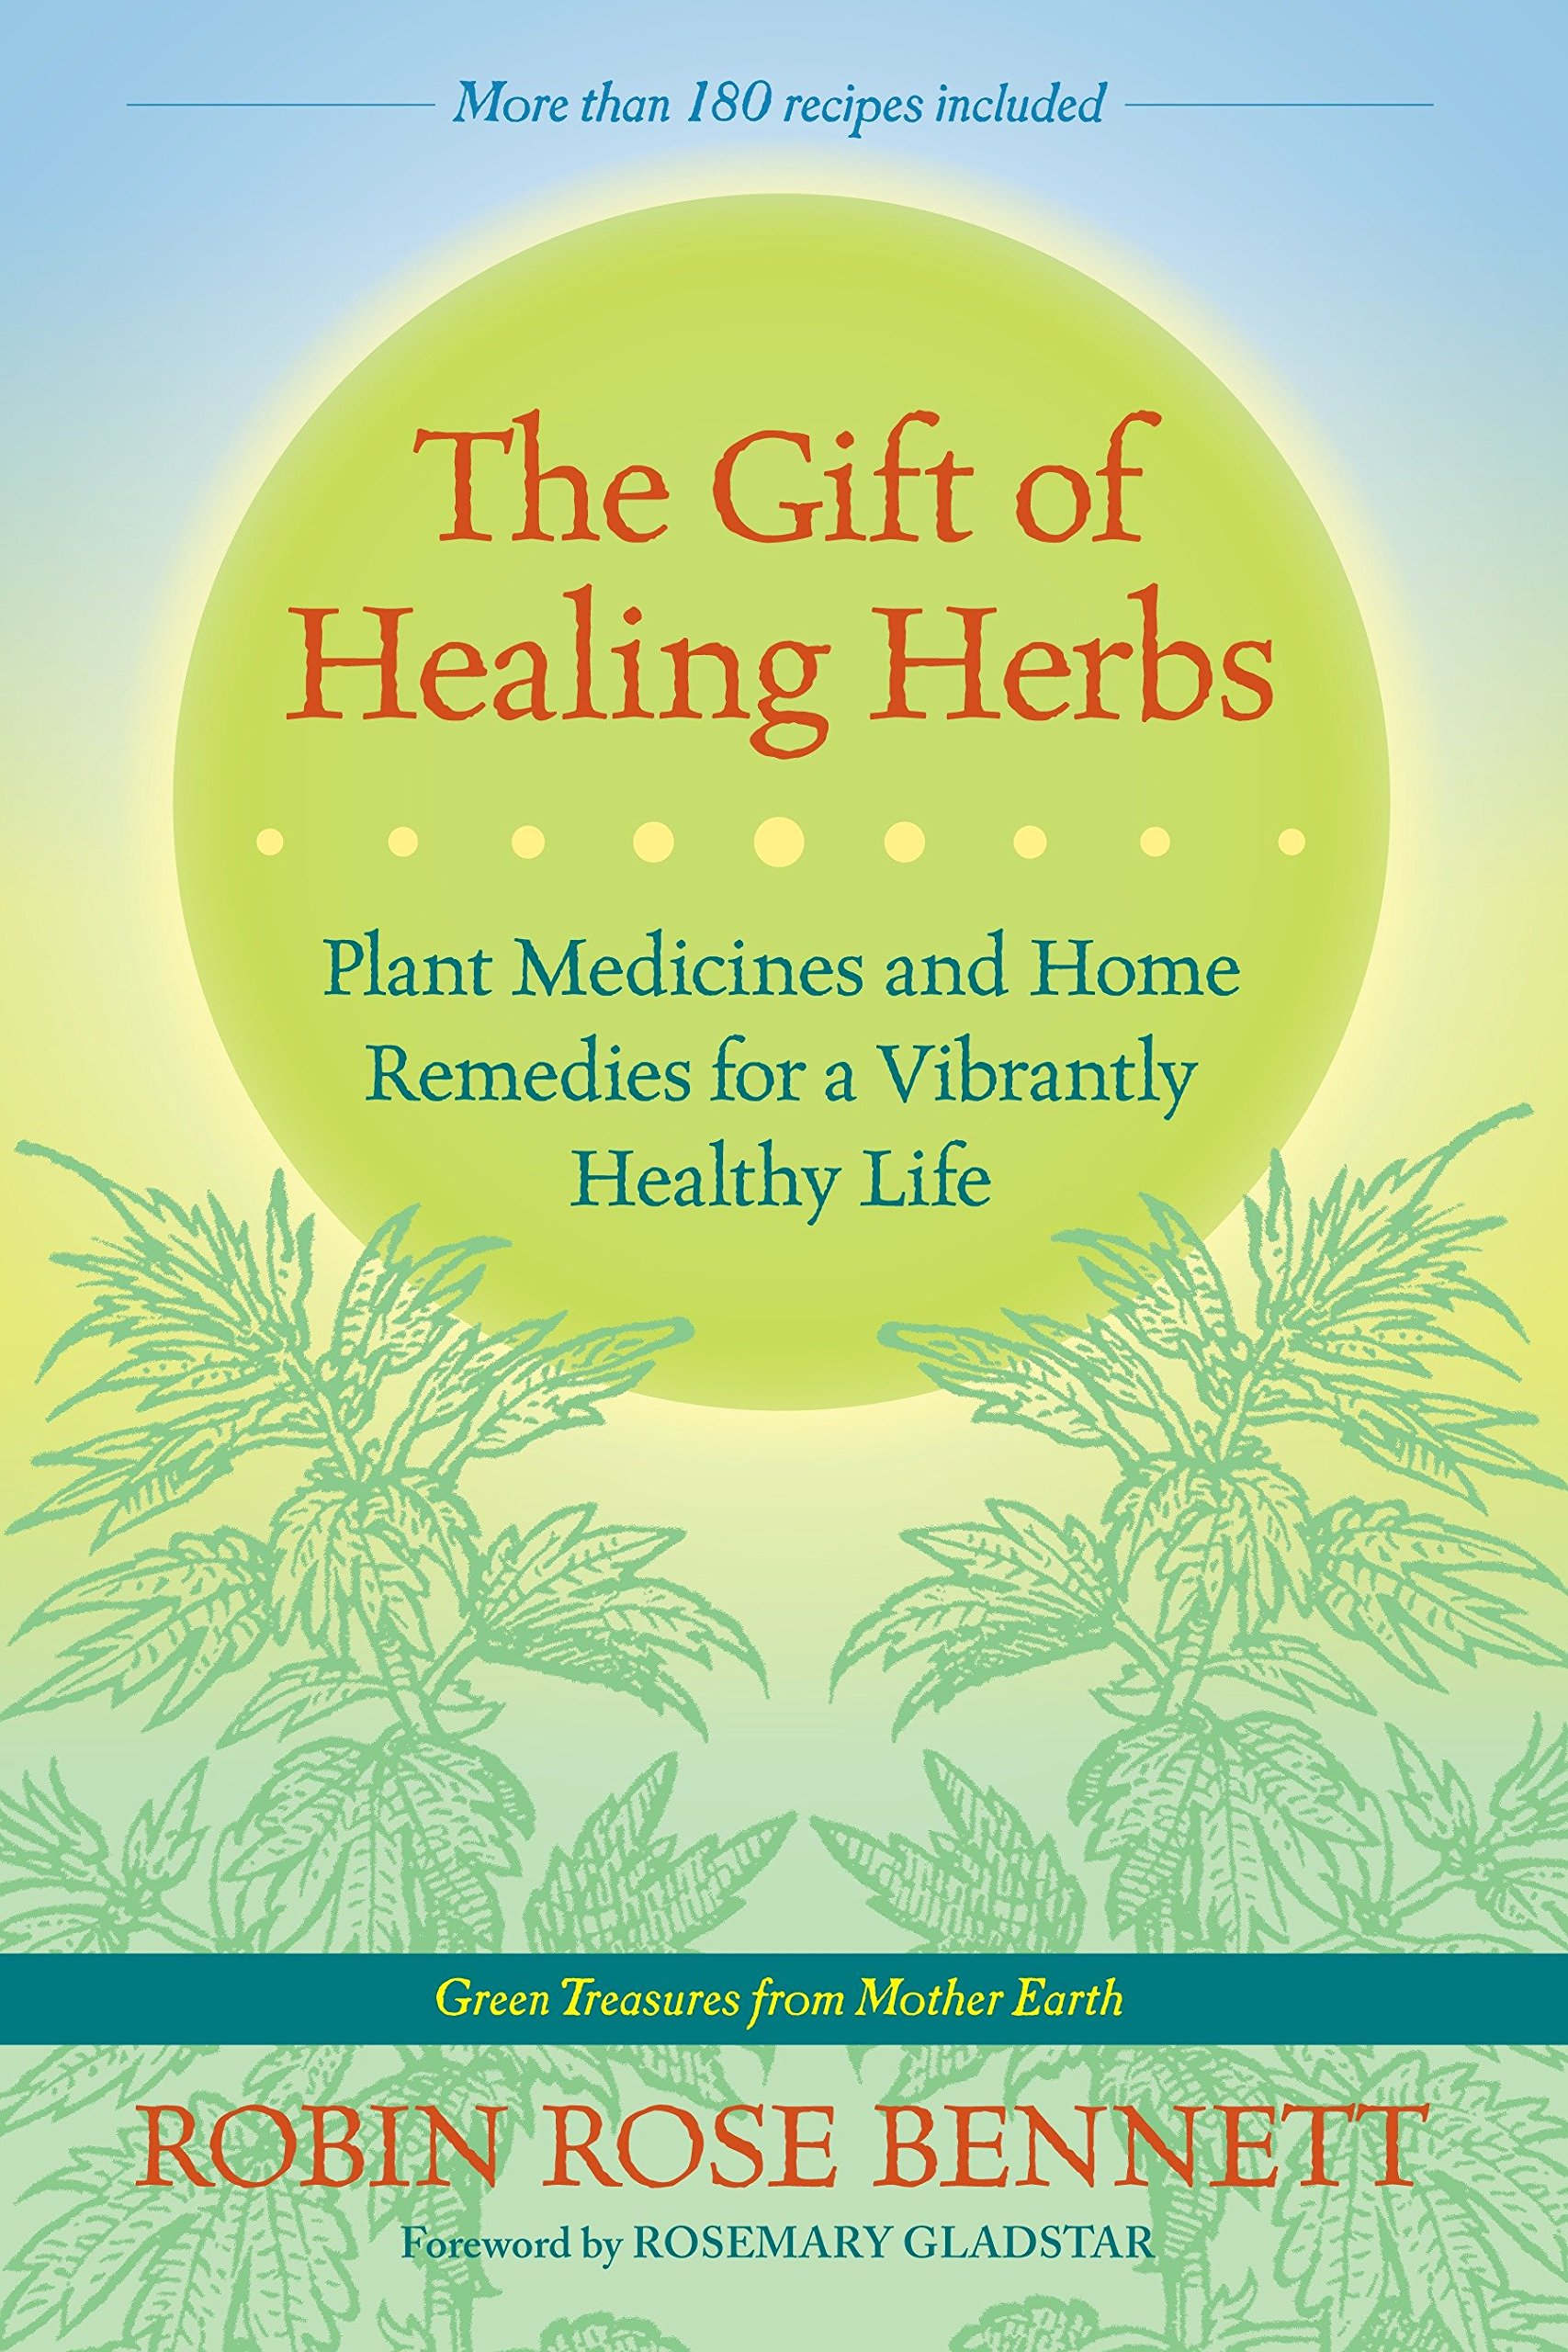 The Gift Of Healing Herbs Plant Medicines And Home Remedies For A Vibrantly Healthy Life Bennett Robin Rose Gladstar Rosemary 9781583947623 Amazon Com Books If you continue to use this site we will assume that you are happy with it.ok. the gift of healing herbs plant